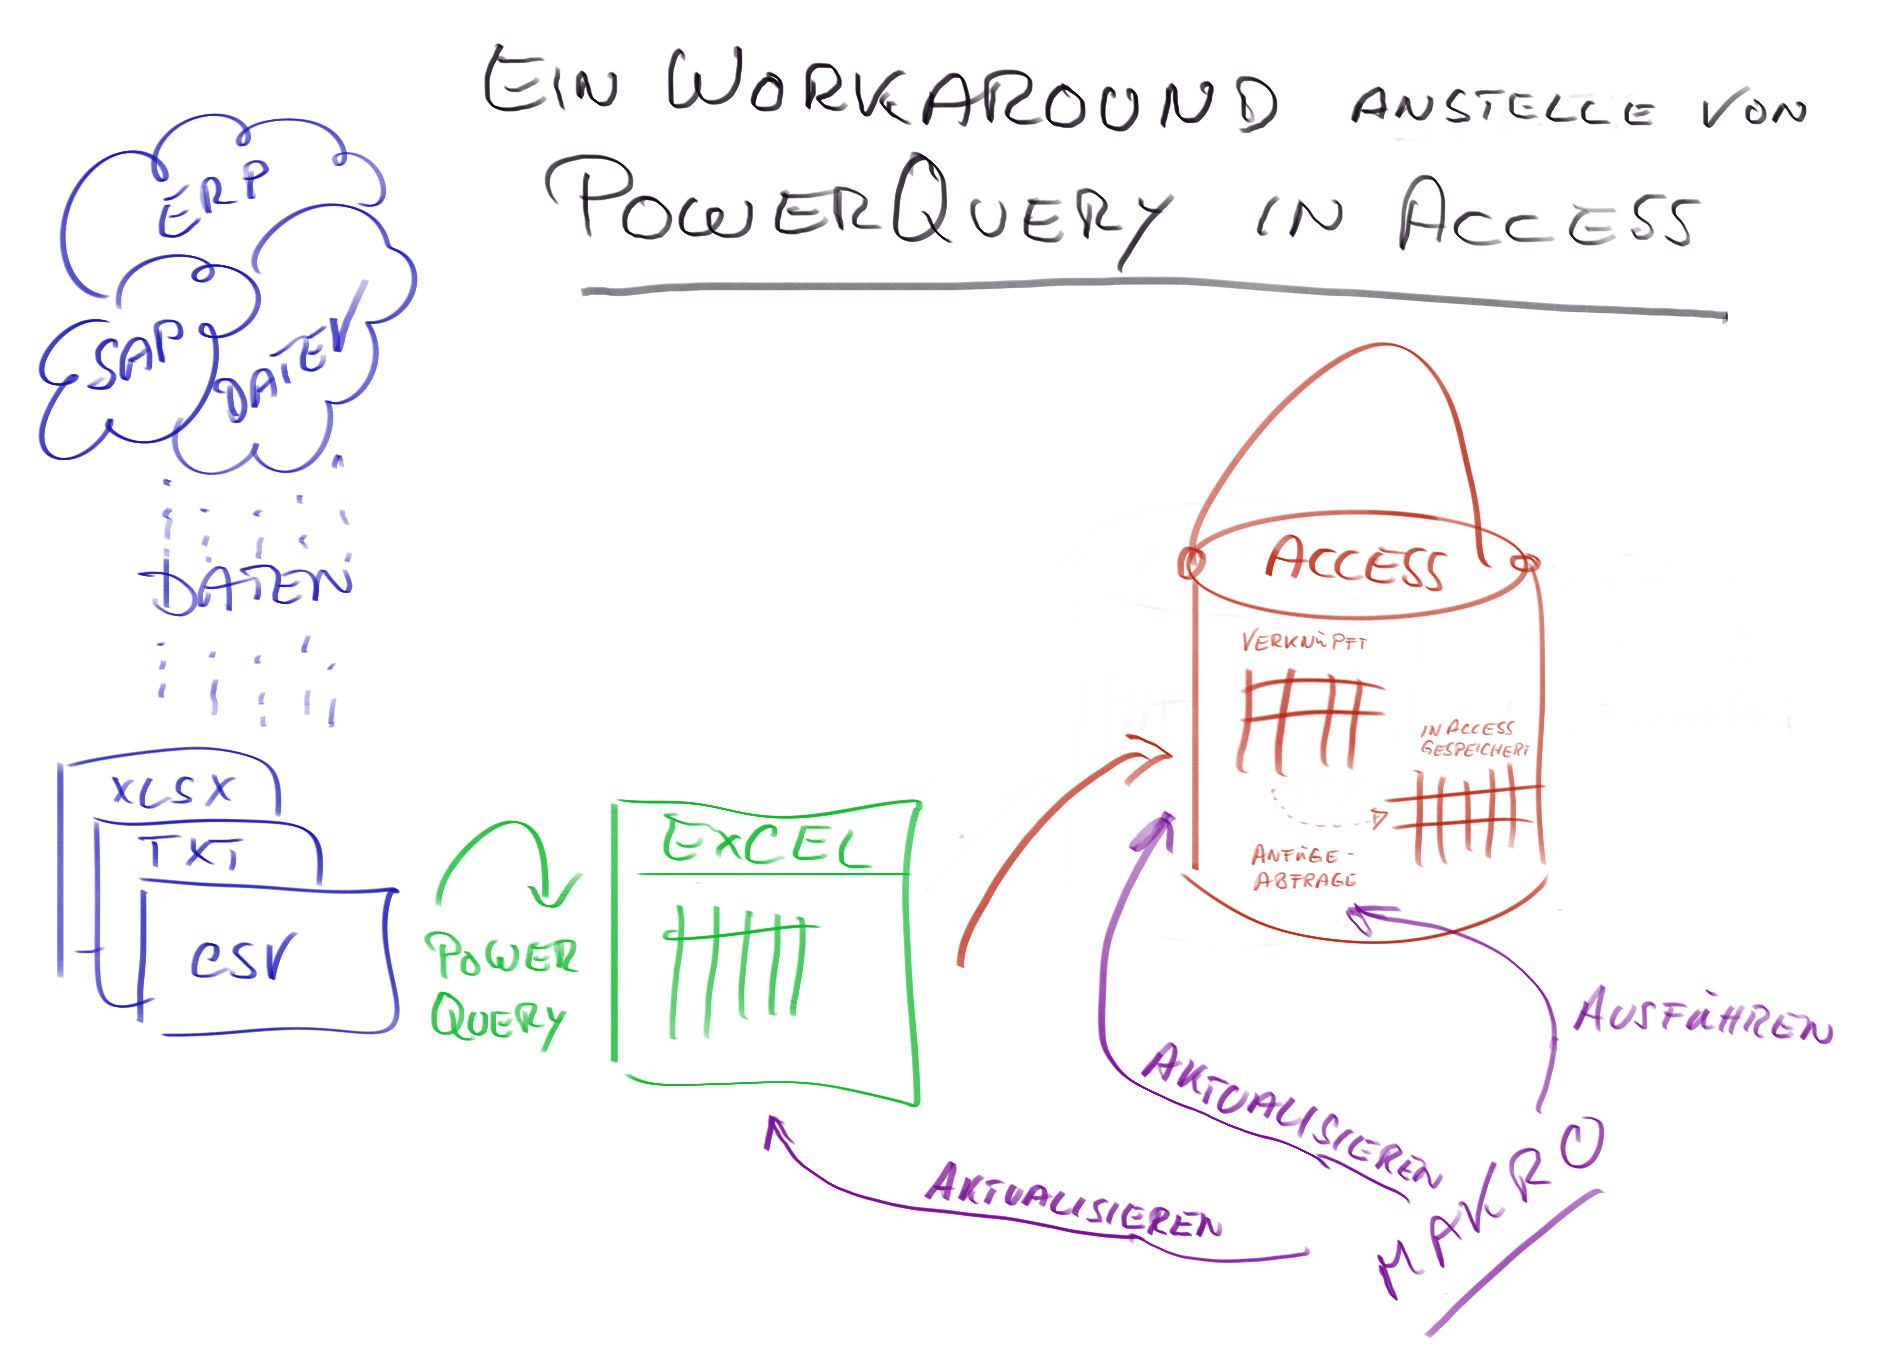 powerquery-in-access.png